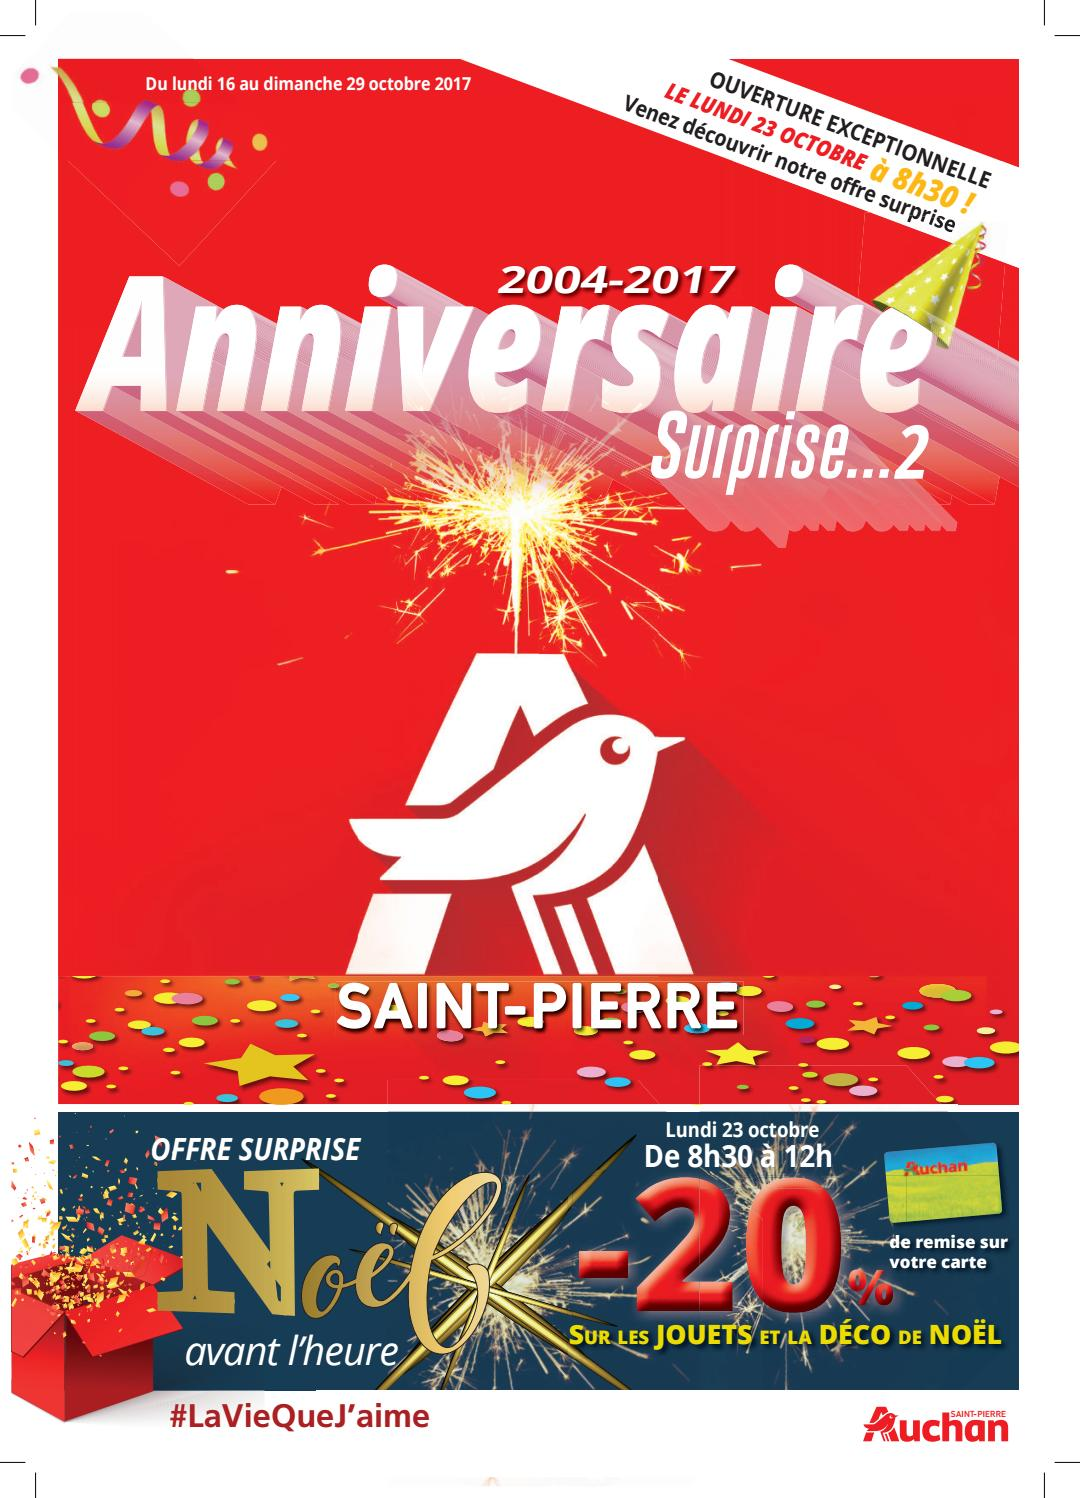 Catalogue Auchan Saint Pierre Du 16 Au 29 Octobre 2017 By